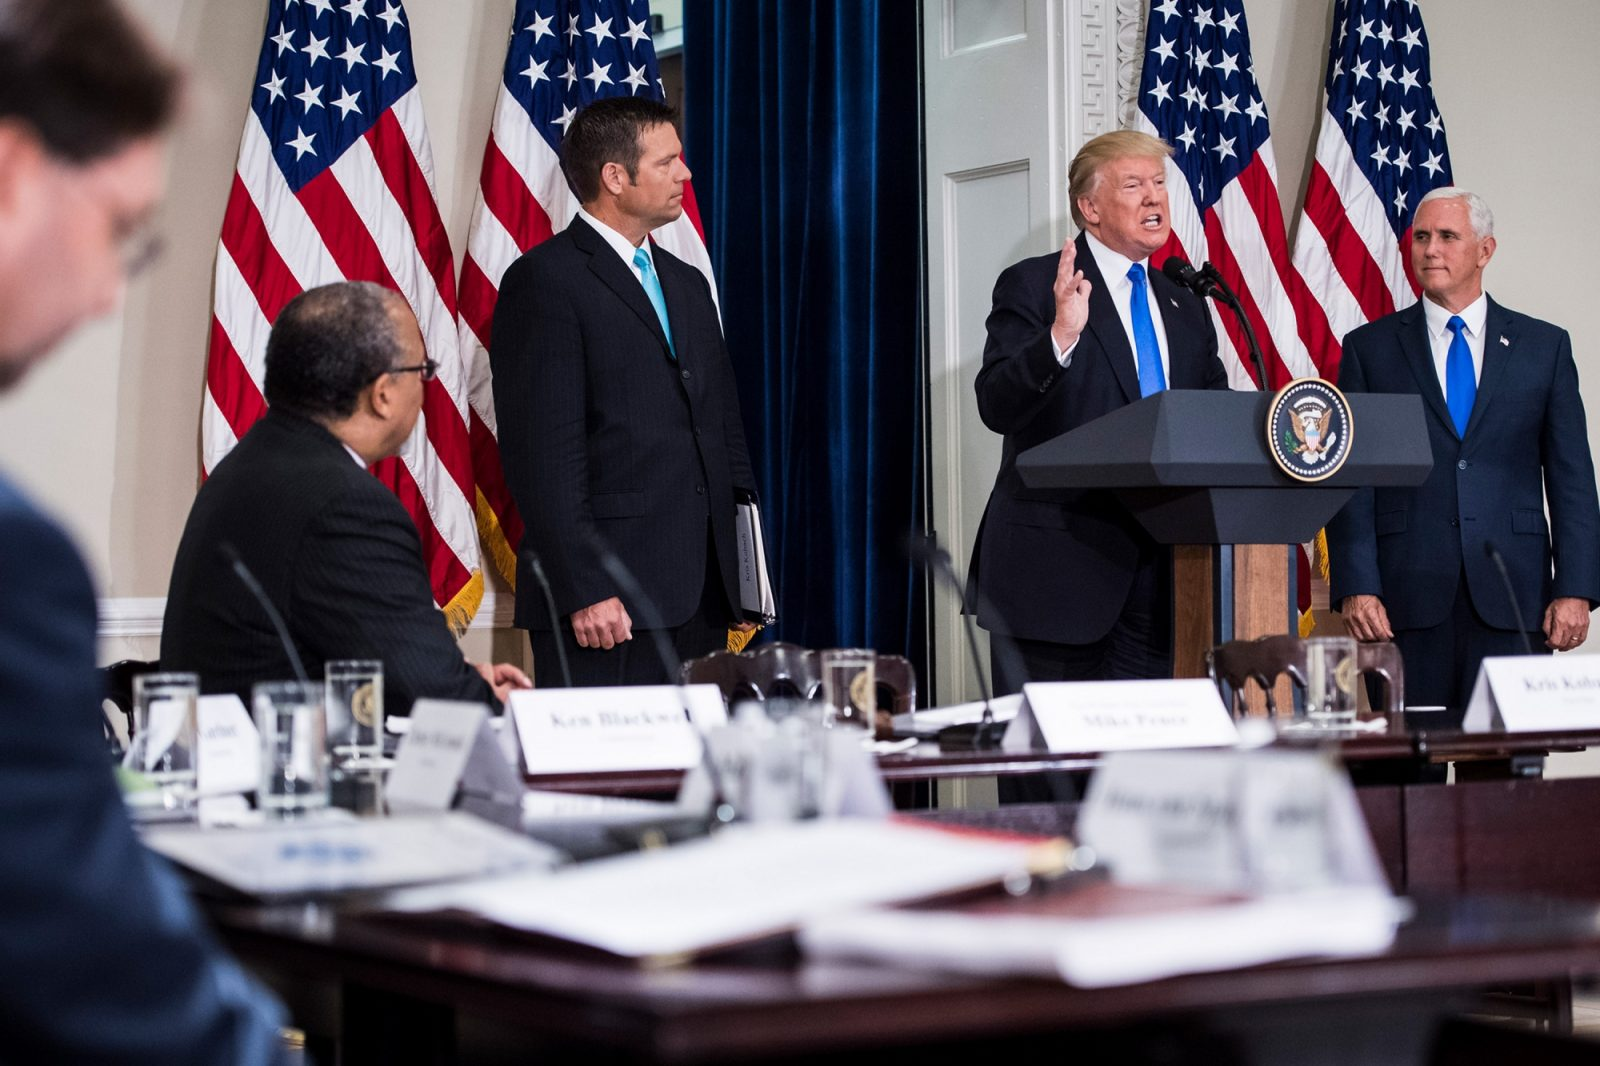 President Donald Trump, accompanied by Vice President Mike Pence and Kansas Secretary of State Kris Kobach, speaks to commissioners.